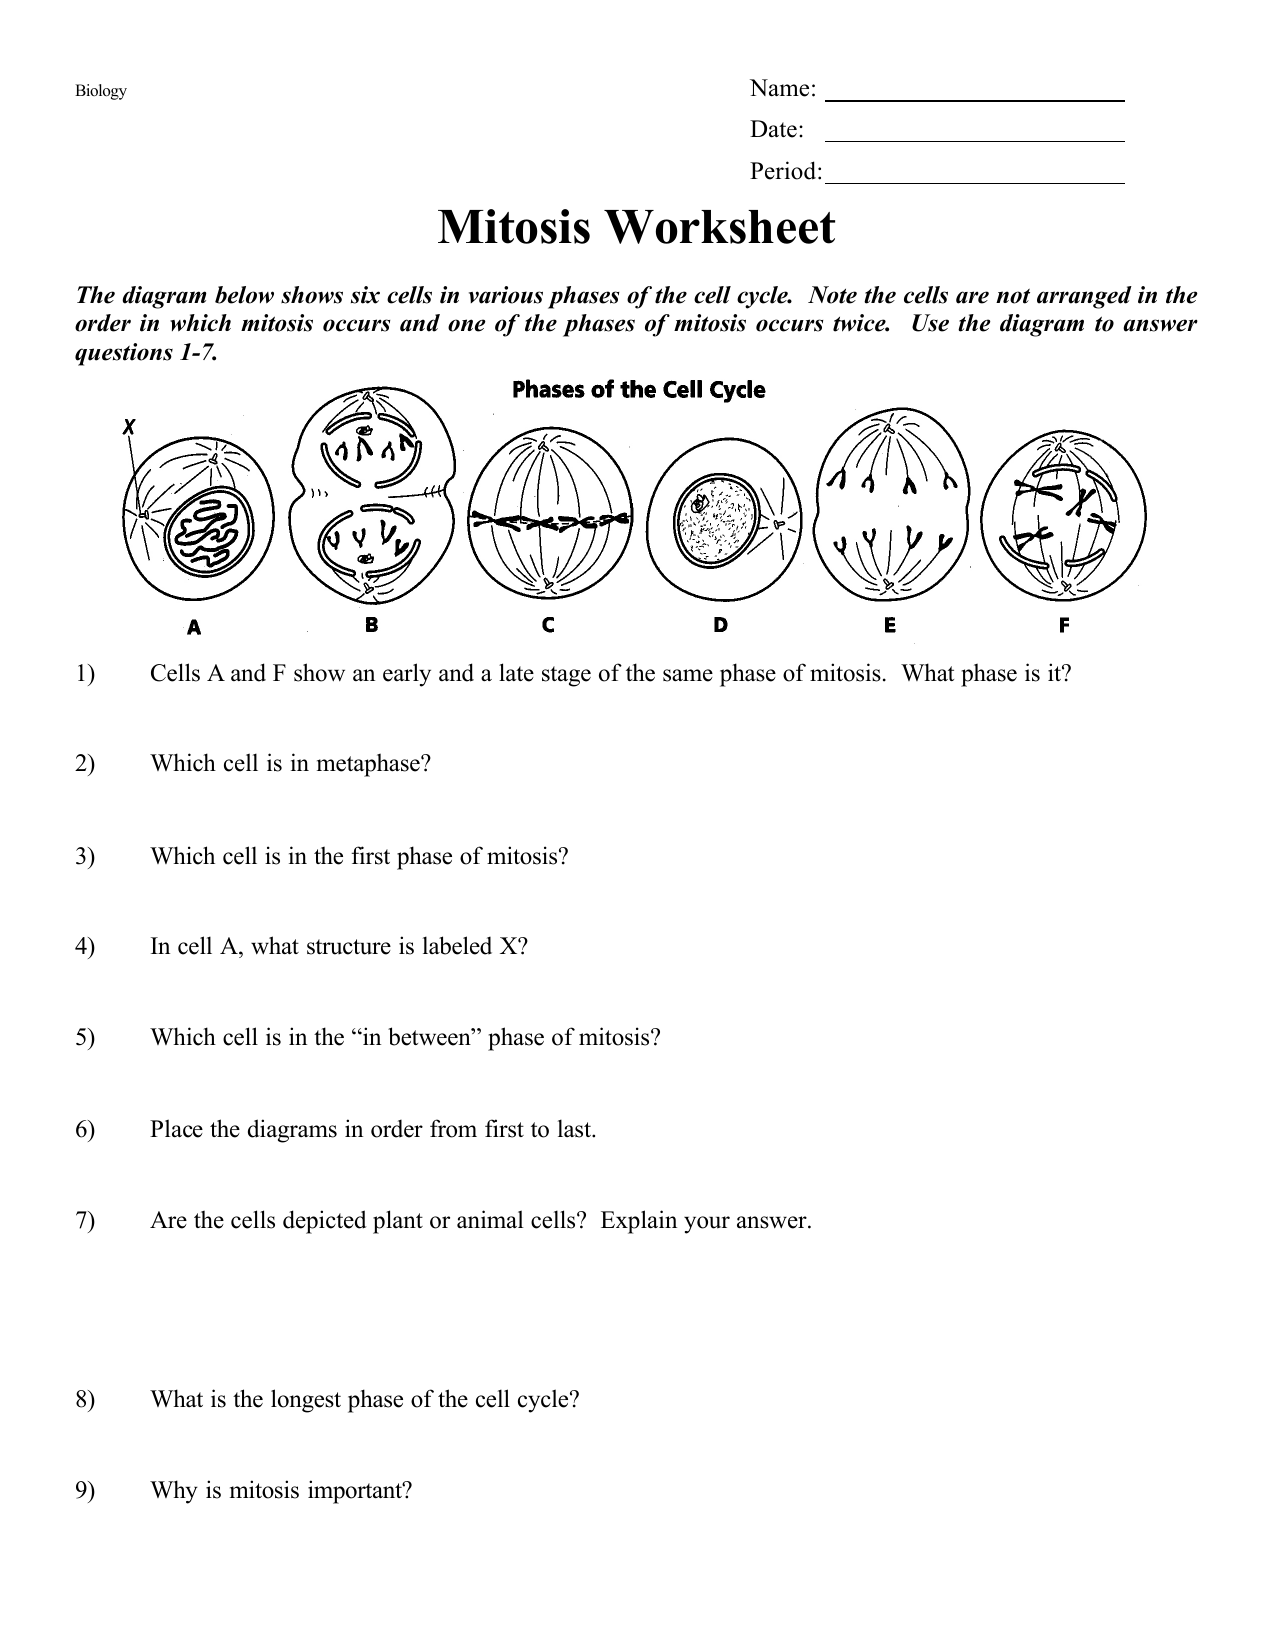 cell cycle diagram blank worksheet – vmglobal co as well Cell Cycle Worksheet   Homedressage together with cell division coloring worksheet – psubarstool likewise 6  THE CELL CYCLE WORKSHEET moreover pill cycle period – 7th Grade Math Worksheets also Mitosis Worksheet as well Cell Cycle Coloring Worksheet Answer Key Phases the Cell Cycle further Cell Cycle Labeling Worksheet Answers New Cell Cycle Diagram Labeled in addition The Cell Cycle further Cell Cycle And Mitosis Worksheets   Teaching Resources   TpT moreover mitosis coloring pages – ecancerargentina org besides mitosis coloring pages – festivnation as well The Amoeba Sisters the Cell Cycle and Cancer Video Worksheet Fresh furthermore Cell Cycle Drawing Worksheet At Paintingvalley   Explore Division in addition Cell Cycle Coloring Worksheet Cell Cycle Synchronization On Ice and besides Cell Cycle Labeling. on the cell cycle diagram worksheet